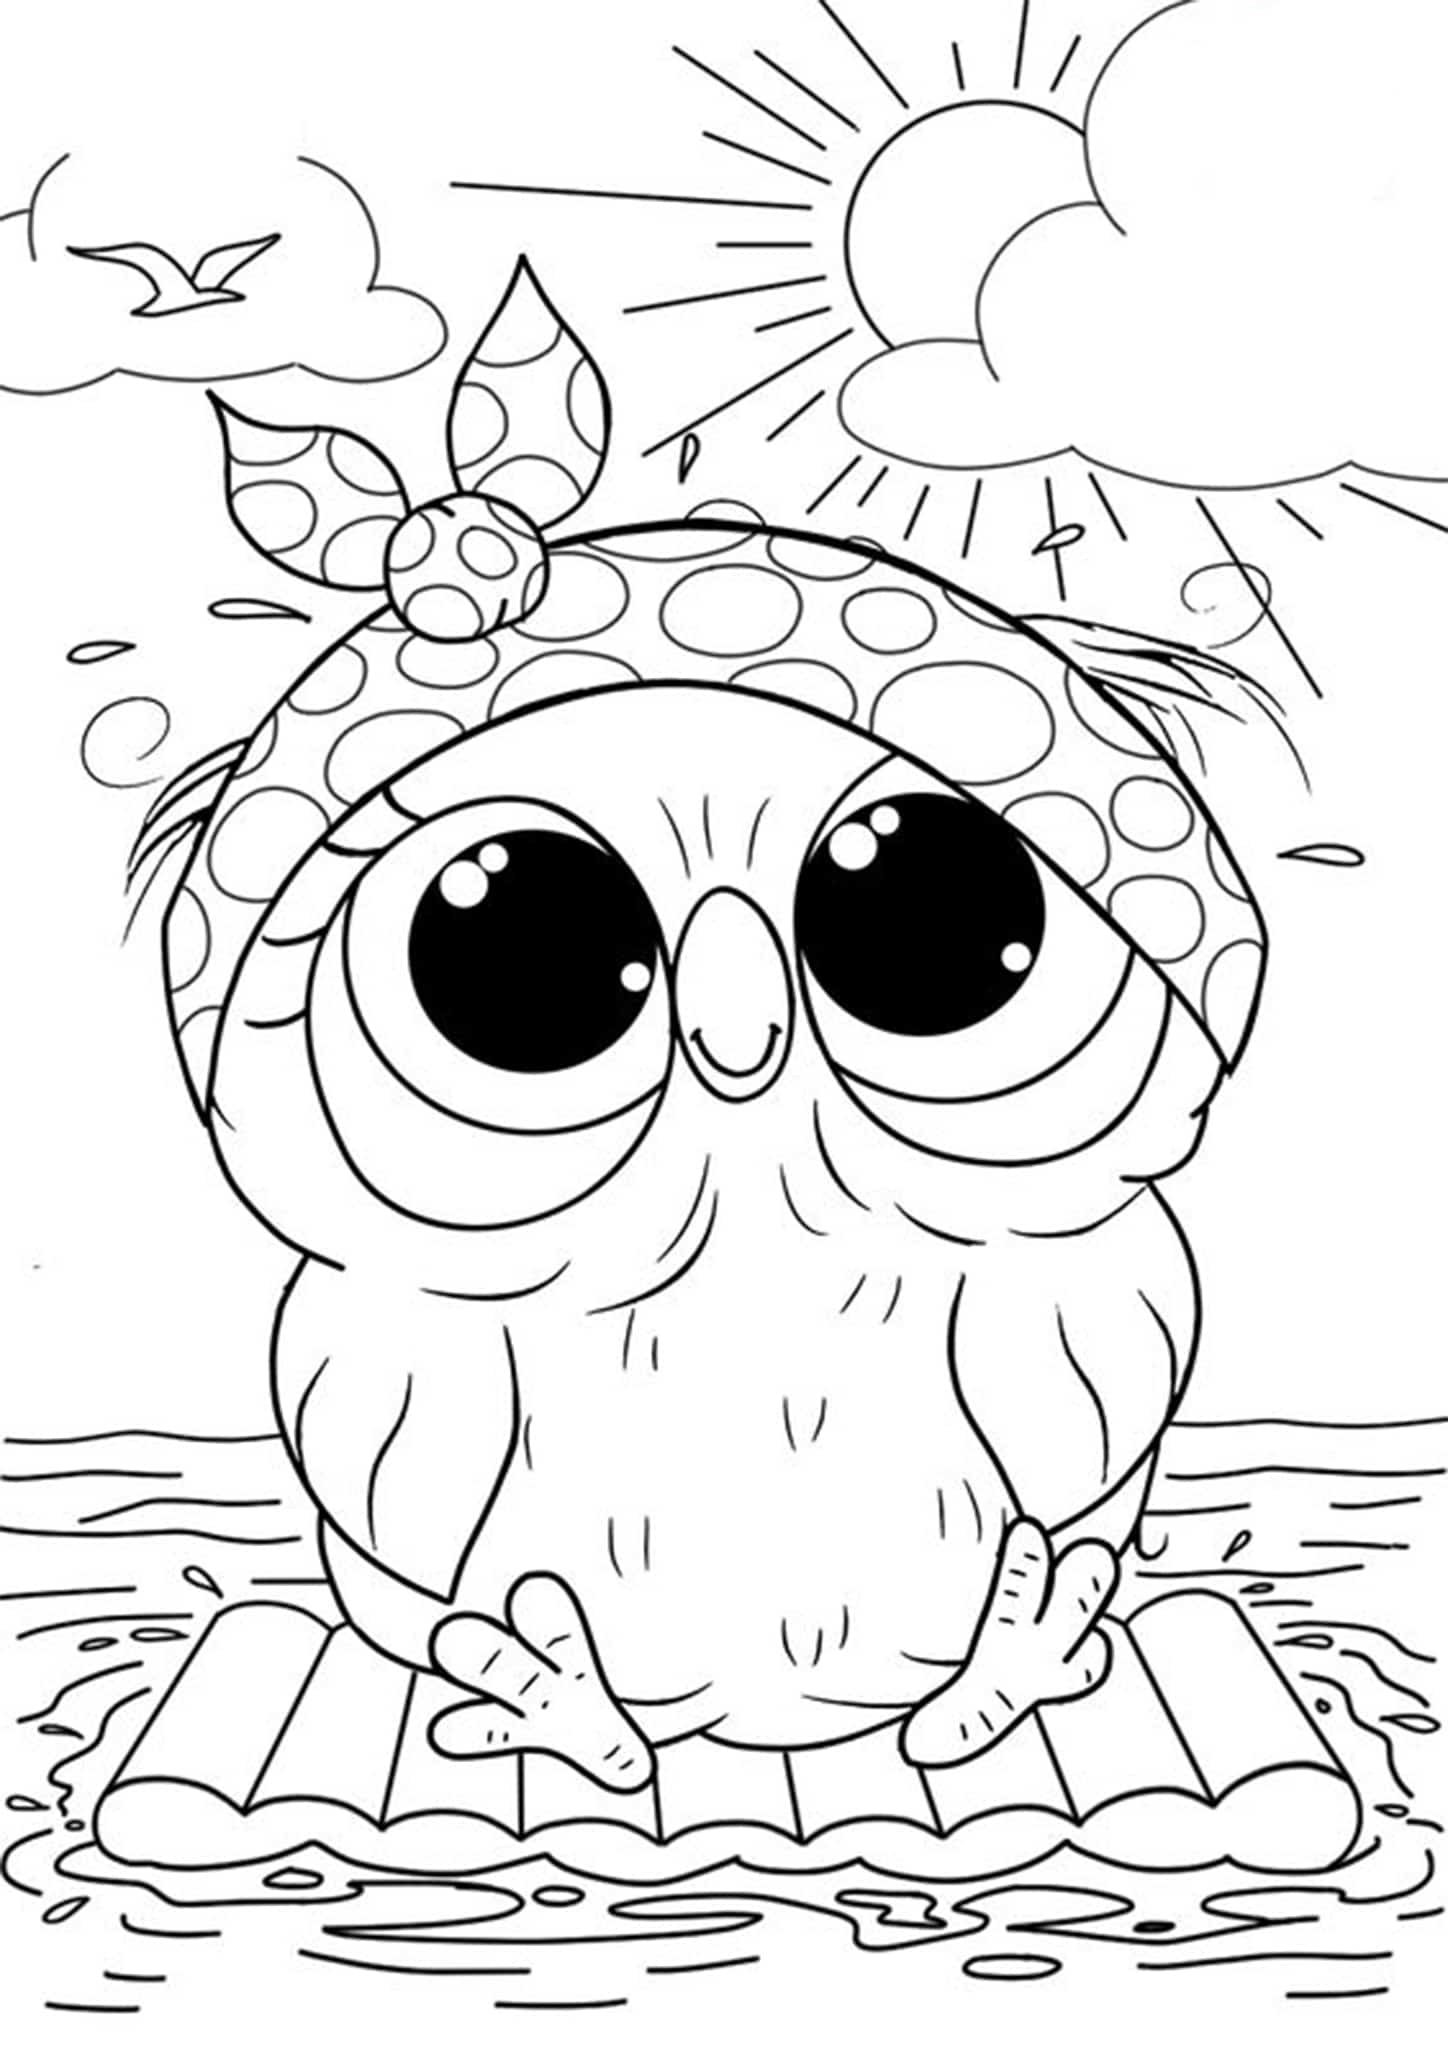 free printable pictures to color adult coloring pages animals best coloring pages for kids color printable to free pictures